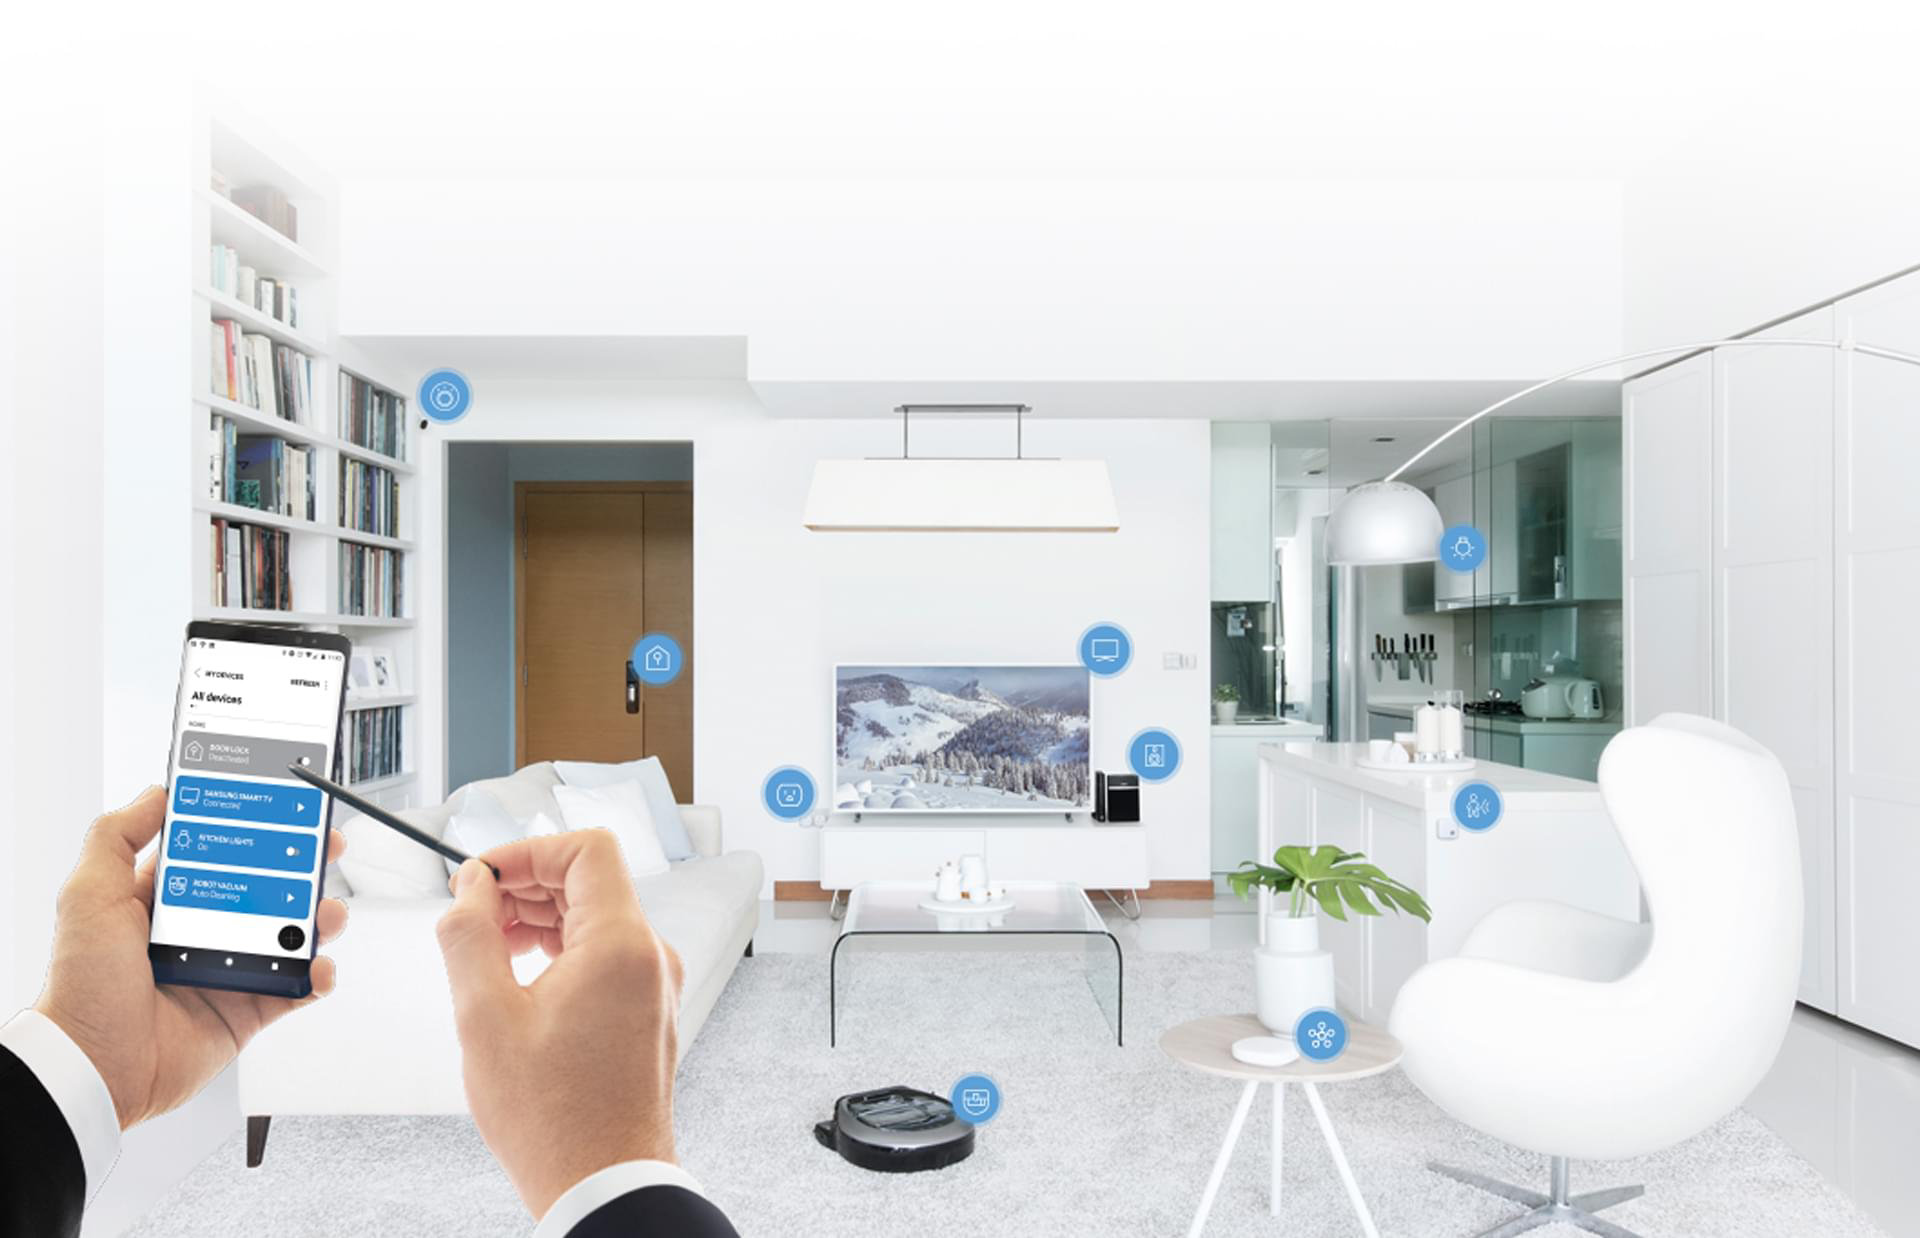 Samsung's new SmartThings Sensors makes monitoring and